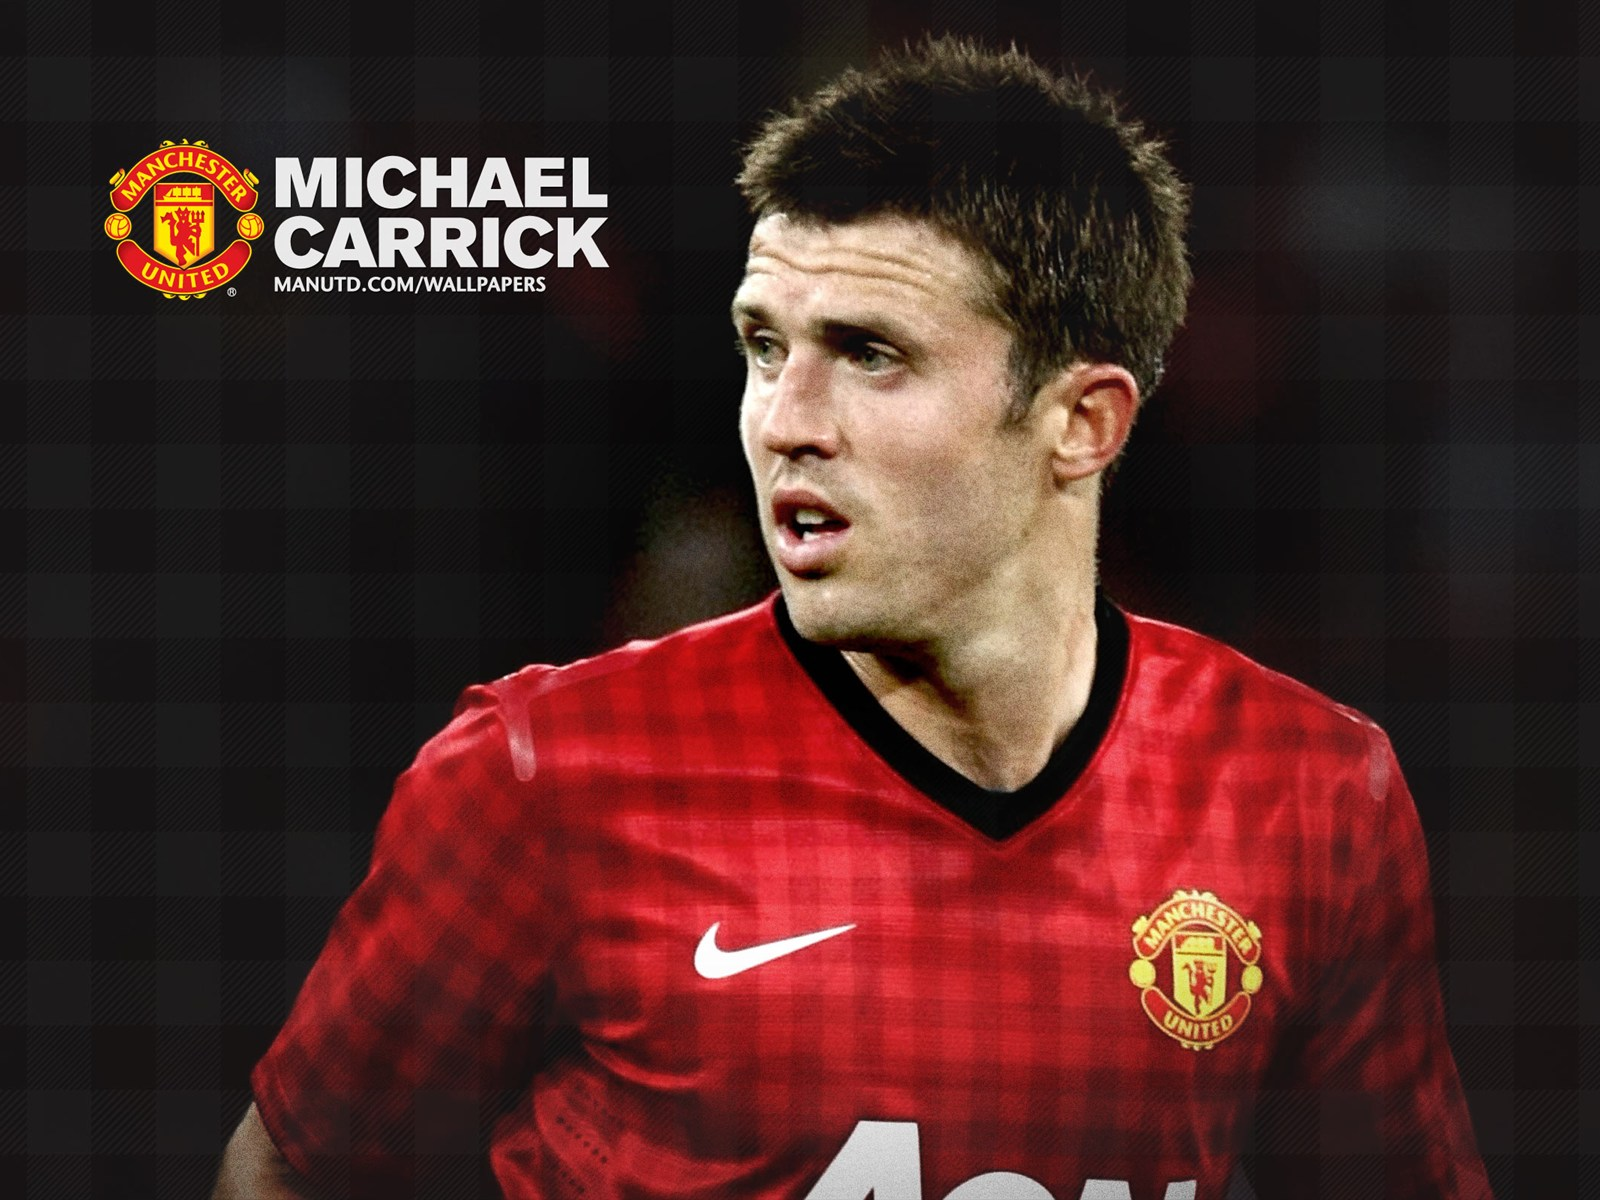 Michael Carrick Pictures Wallpaper